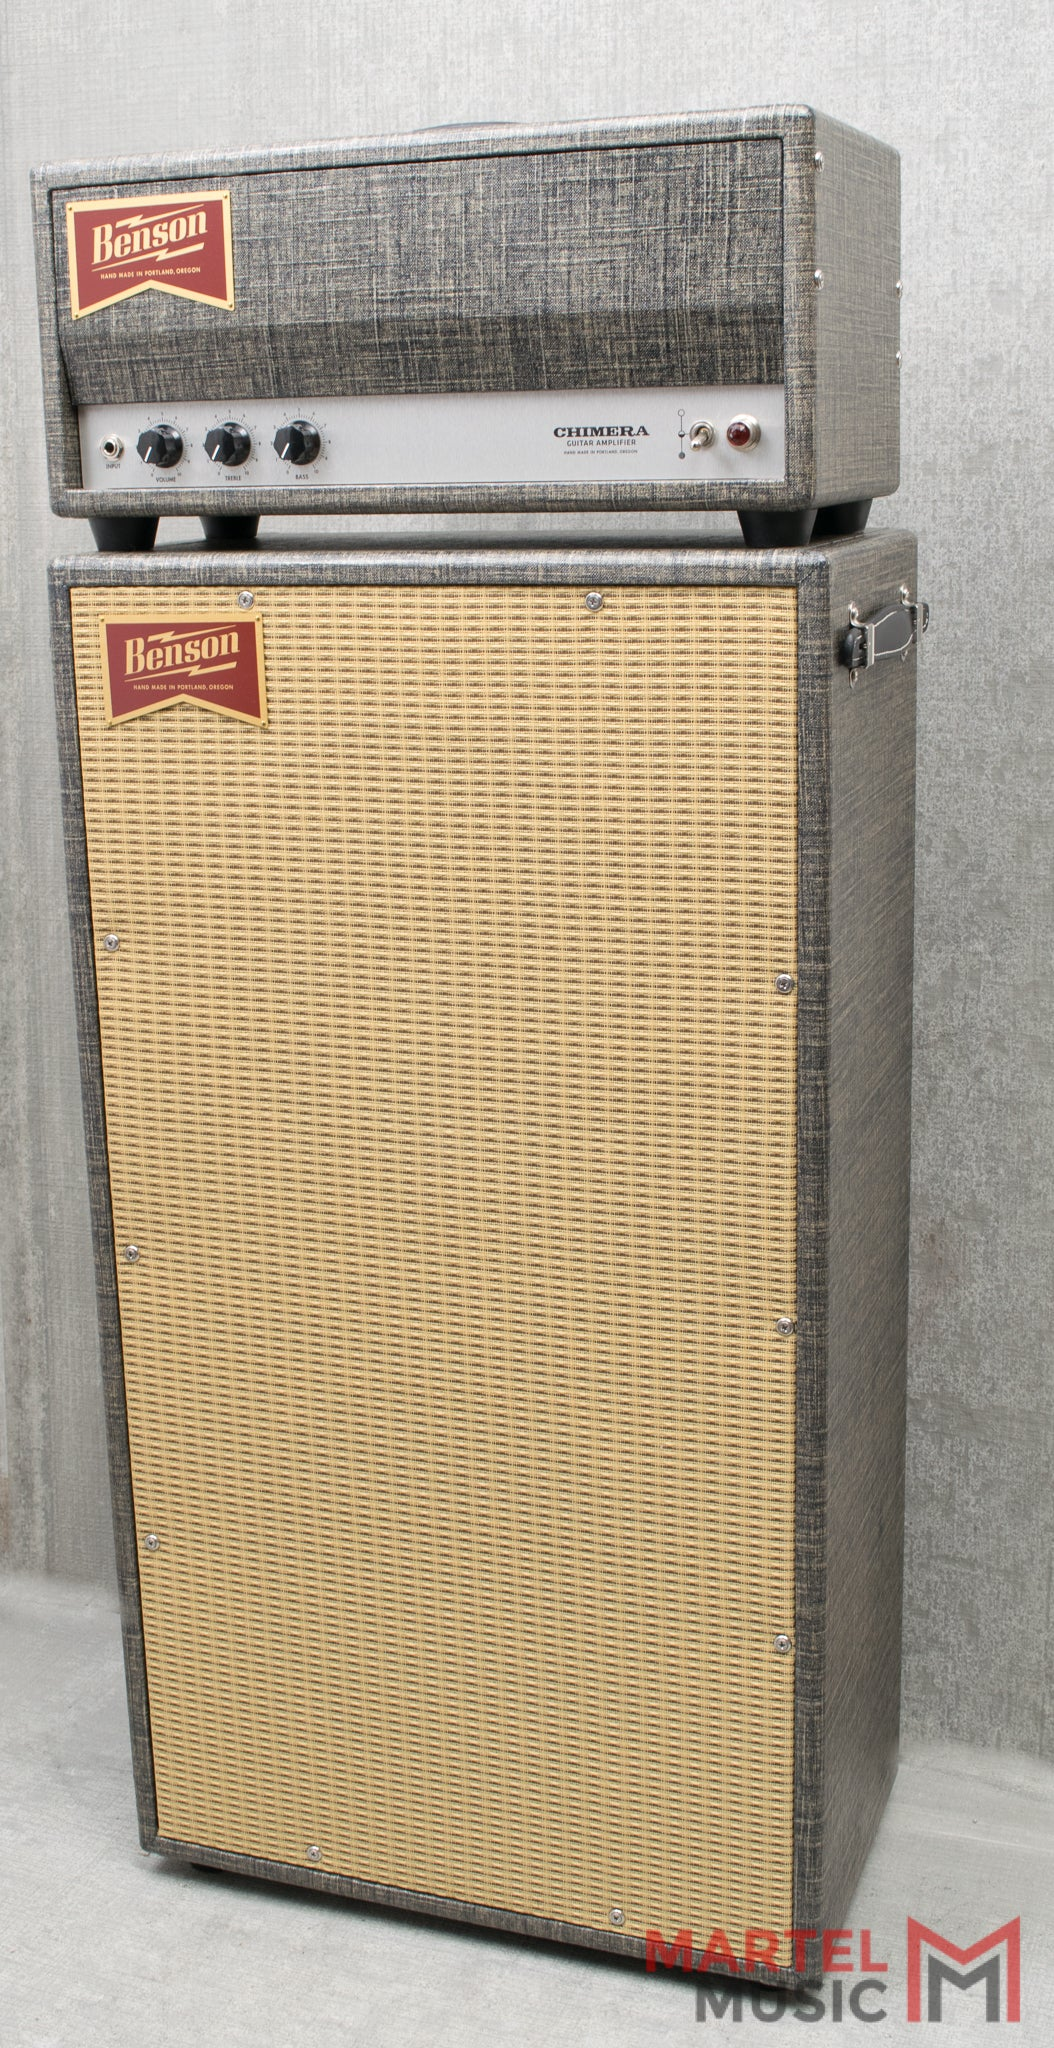 Vox Ac15c2 Custom Twin Martel Music Store Mercury Battery Replacement For Antique Instruments Benson Chimera Head Cabinet Night Moves W Wheat